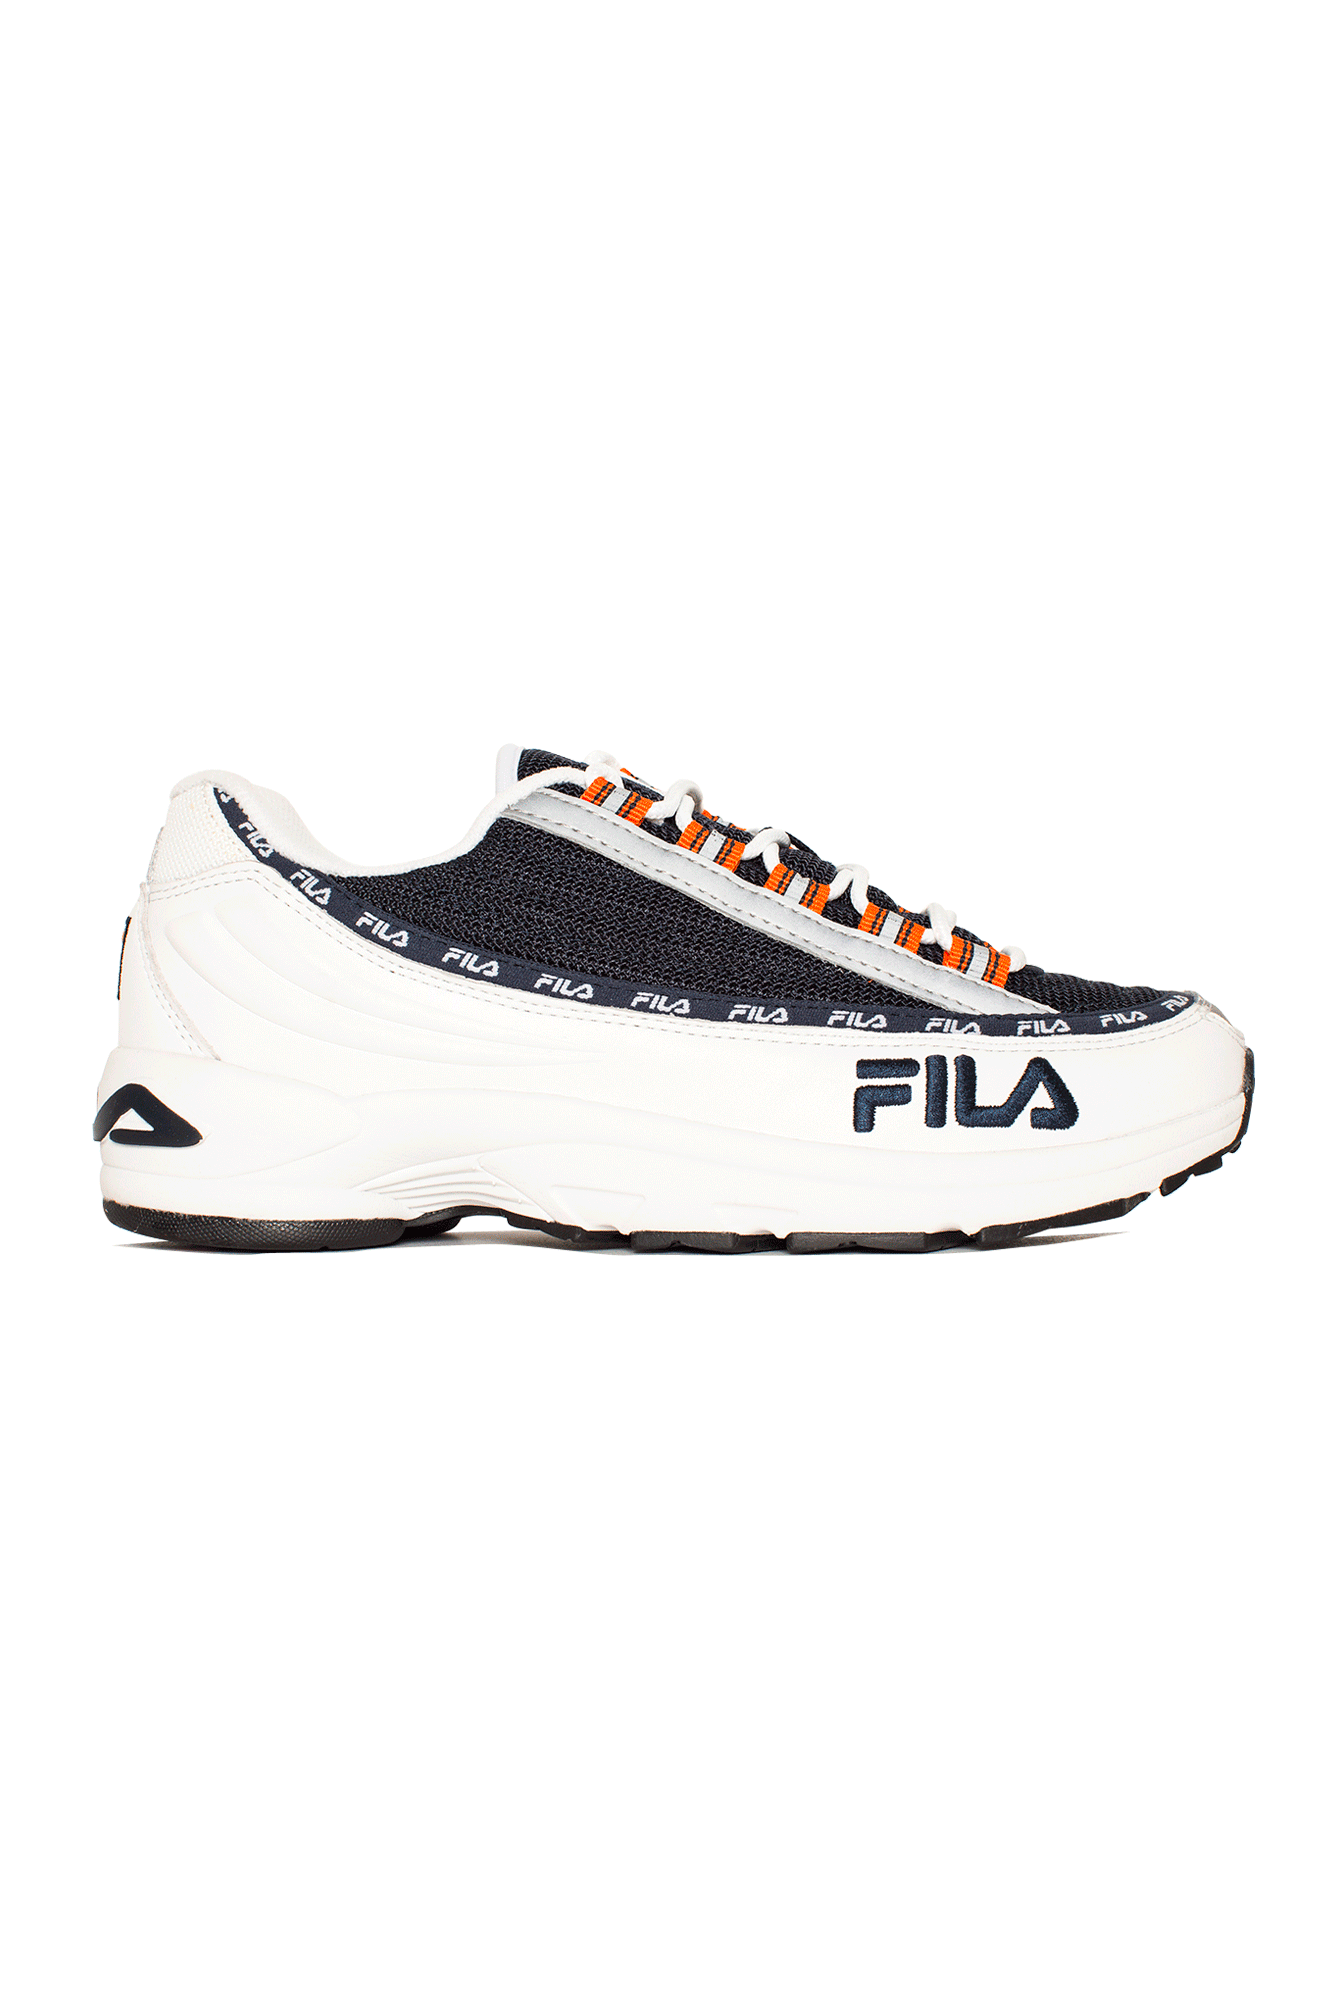 Fila Sneakers Dragster 97 wmn Bianco 10105974D#000#C0006#5,5 - One Block Down